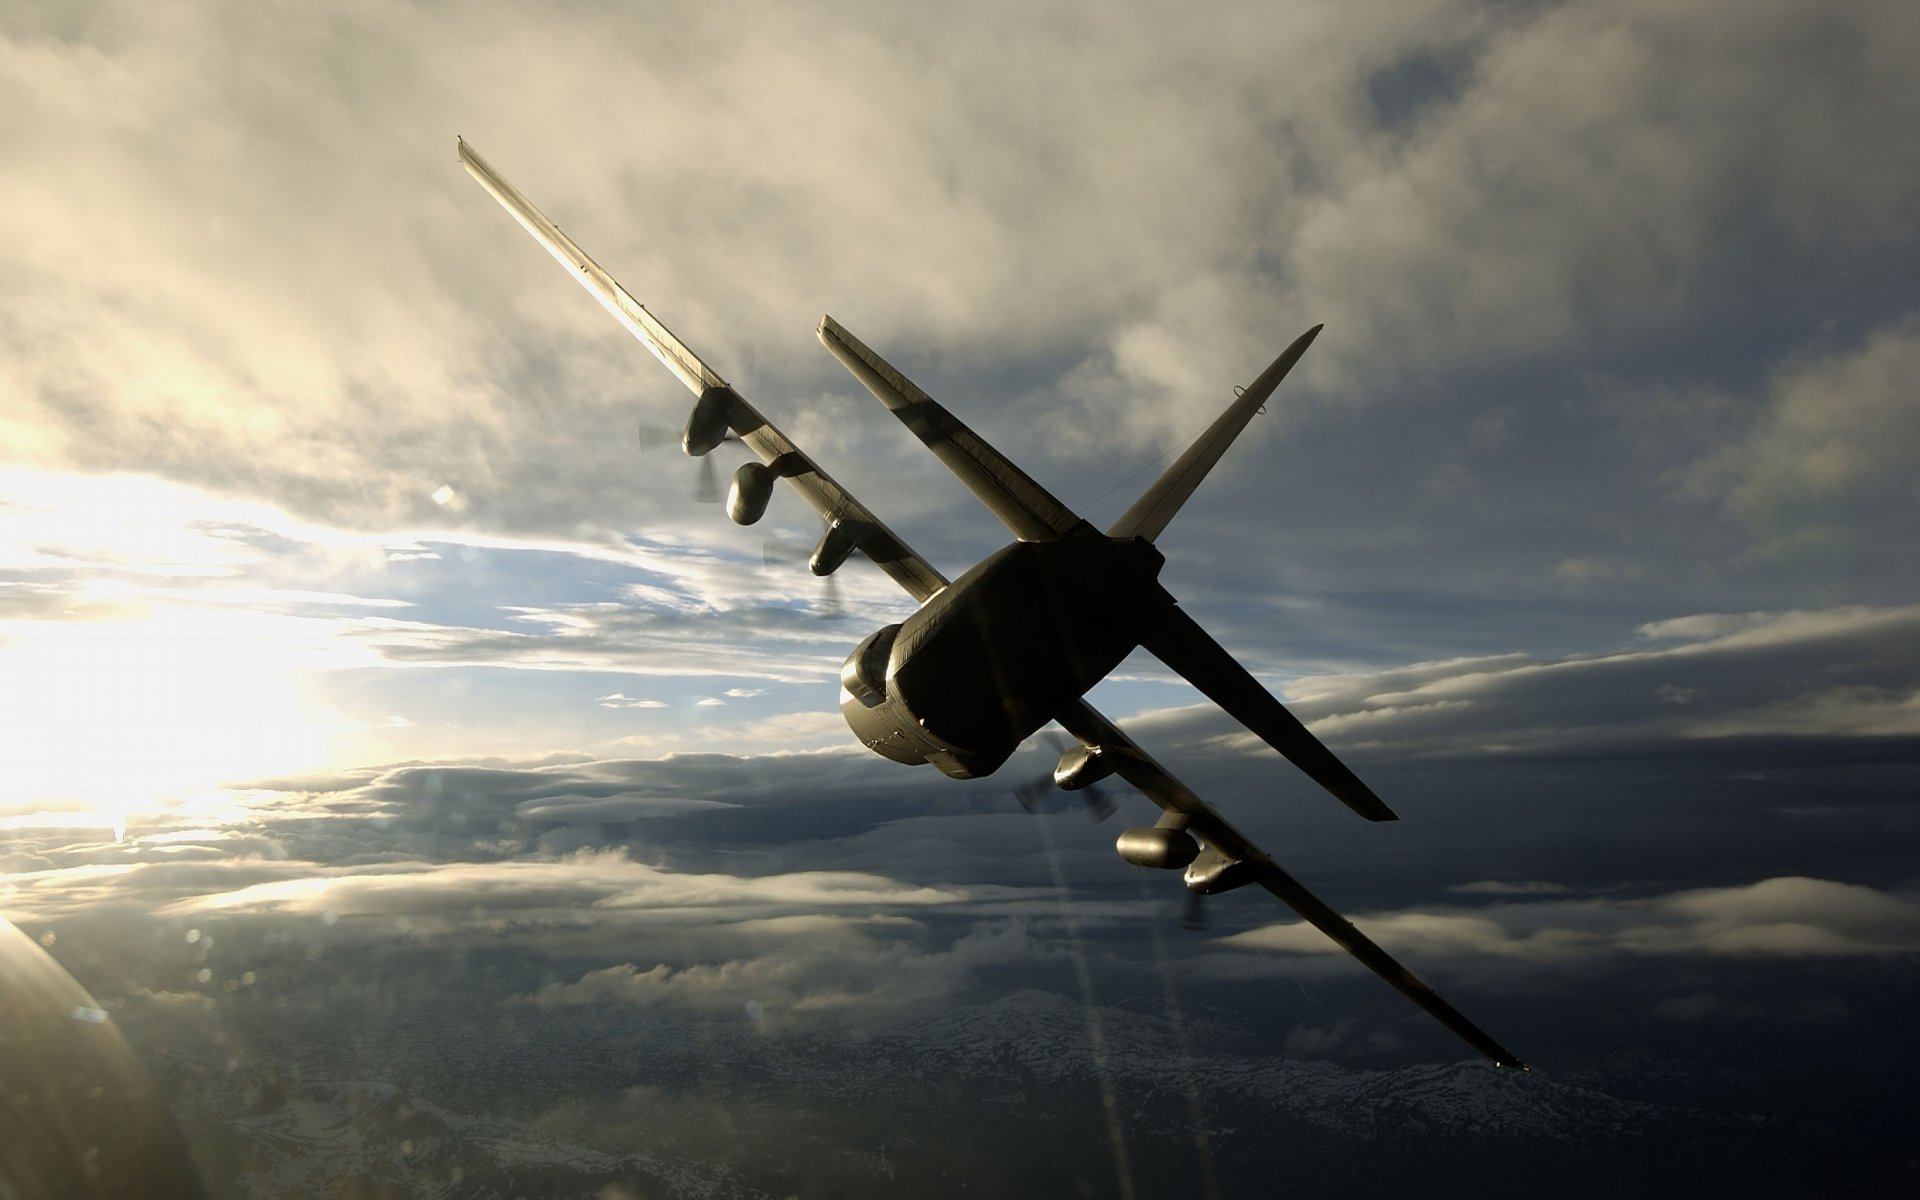 Related Pictures ac130 spectre wallpaper military wallpapers gallery 1920x1200